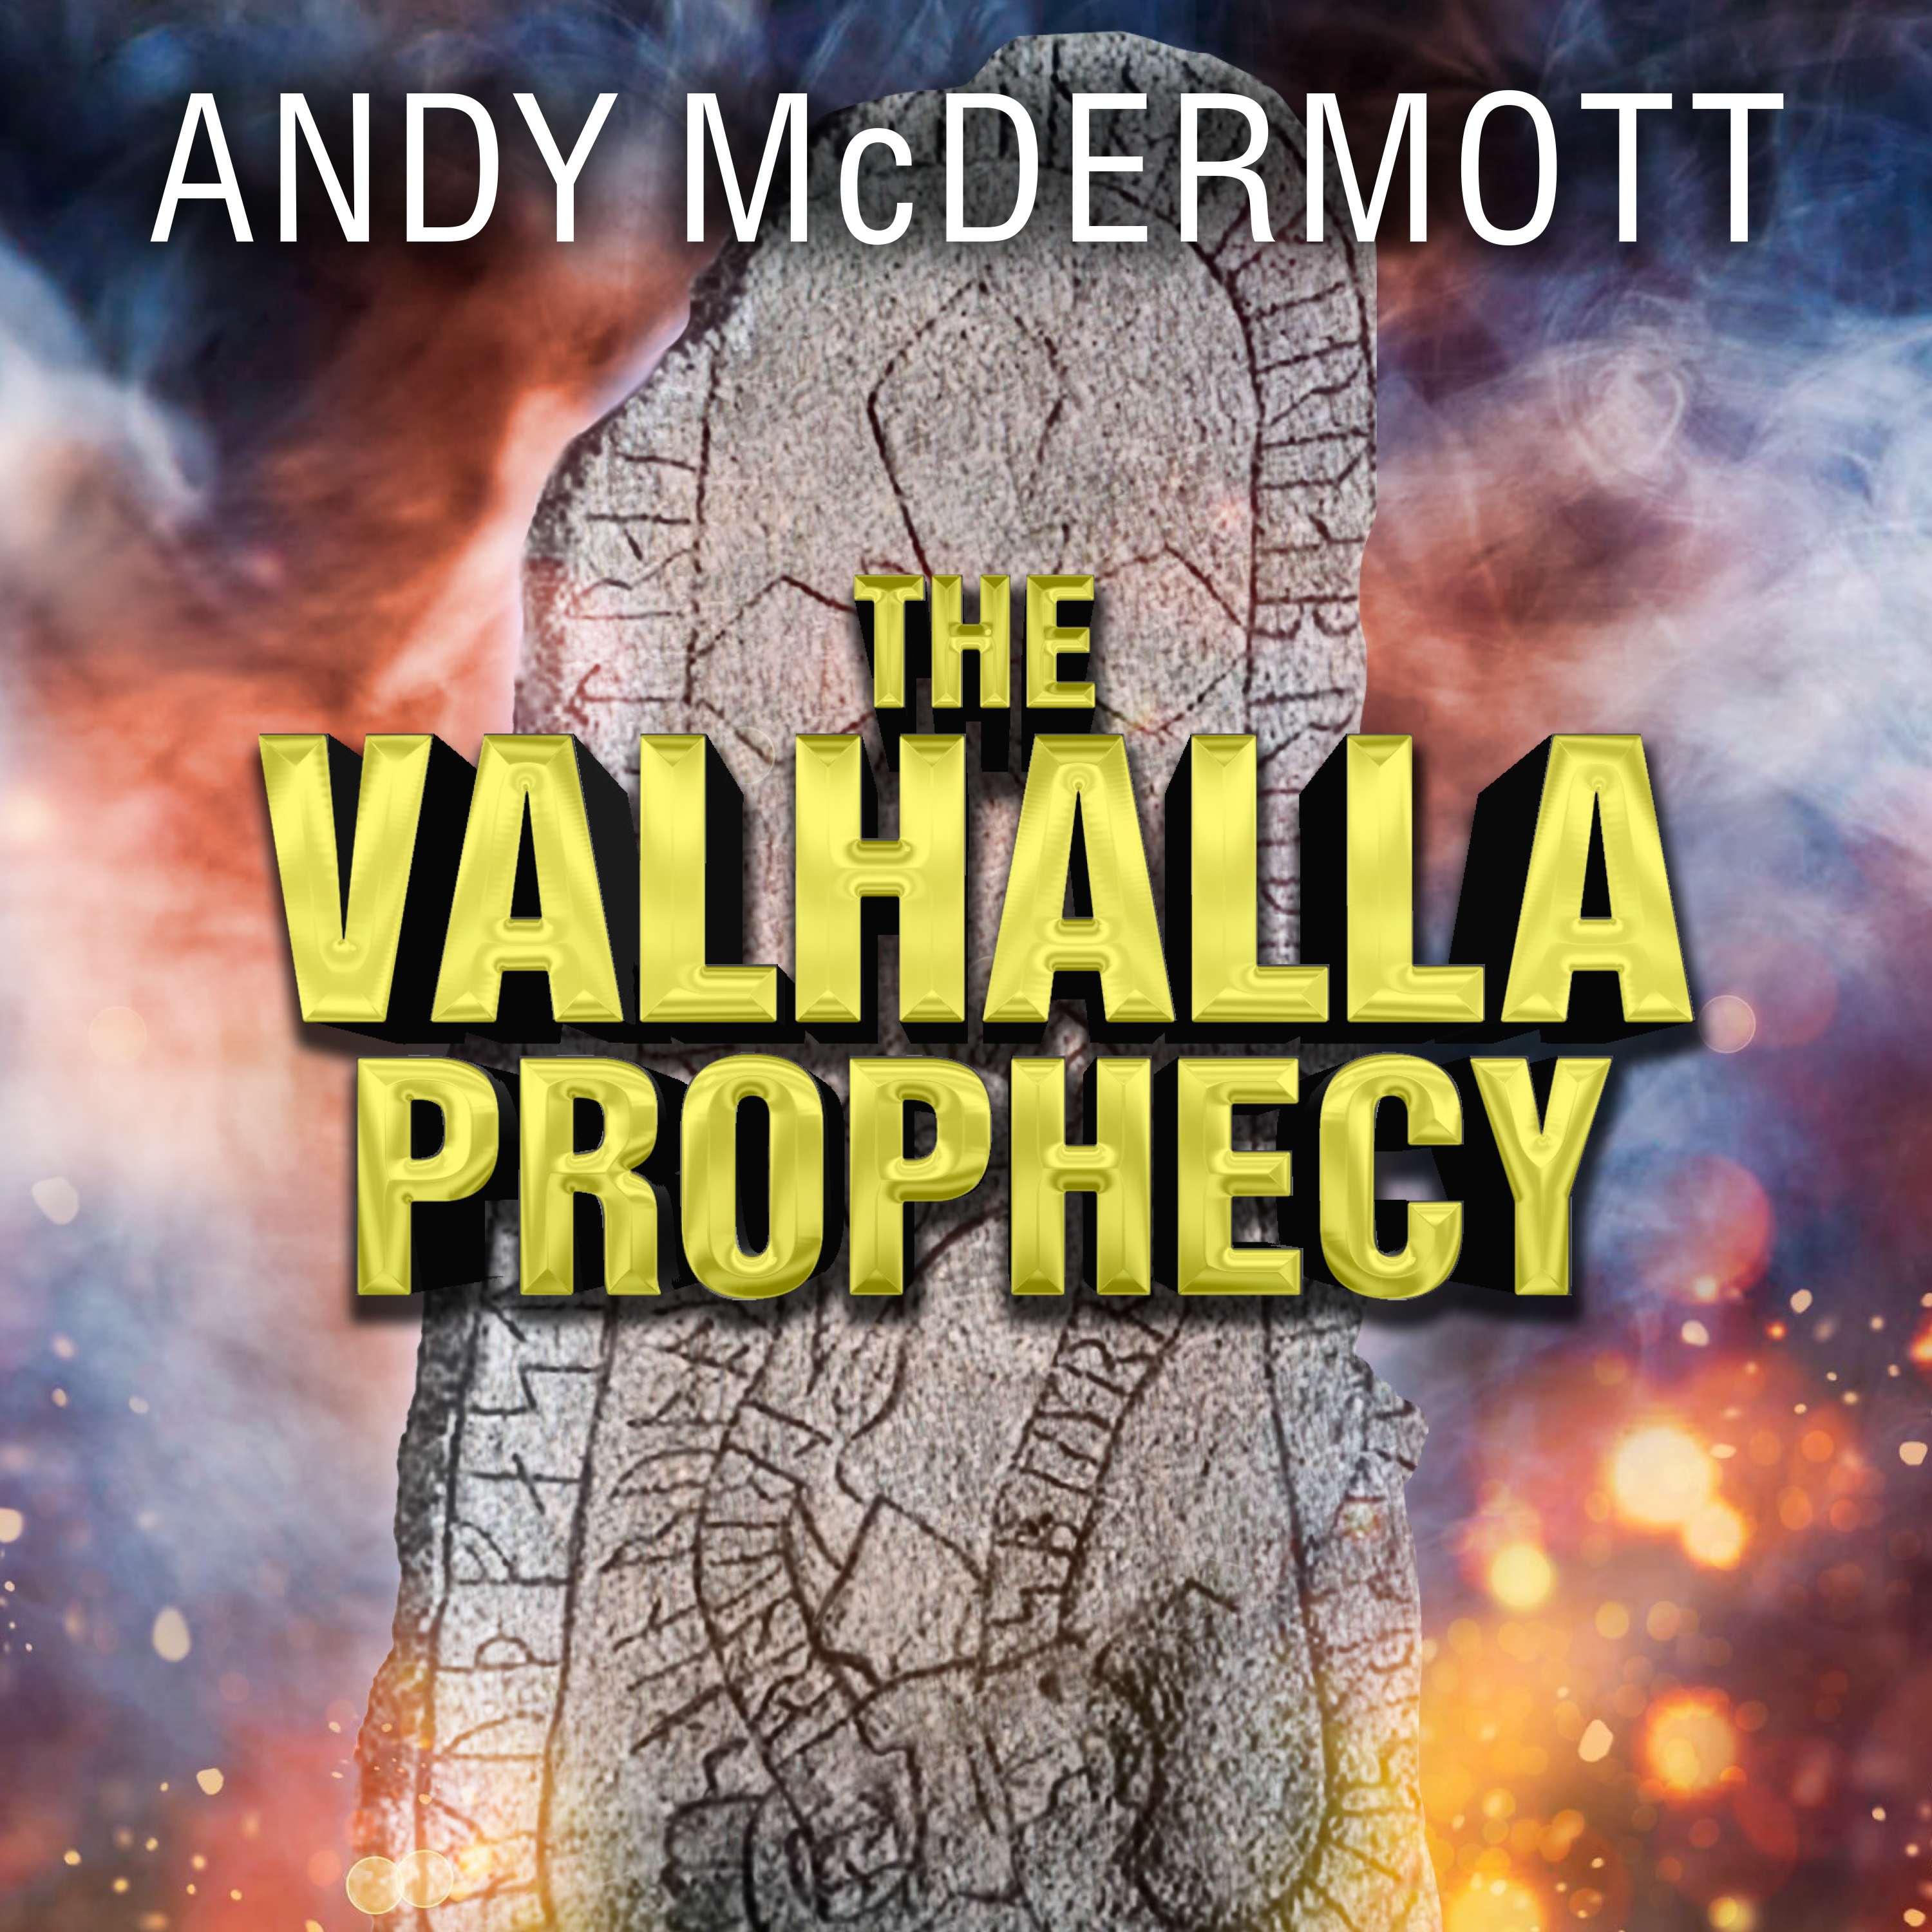 Printable The Valhalla Prophecy Audiobook Cover Art